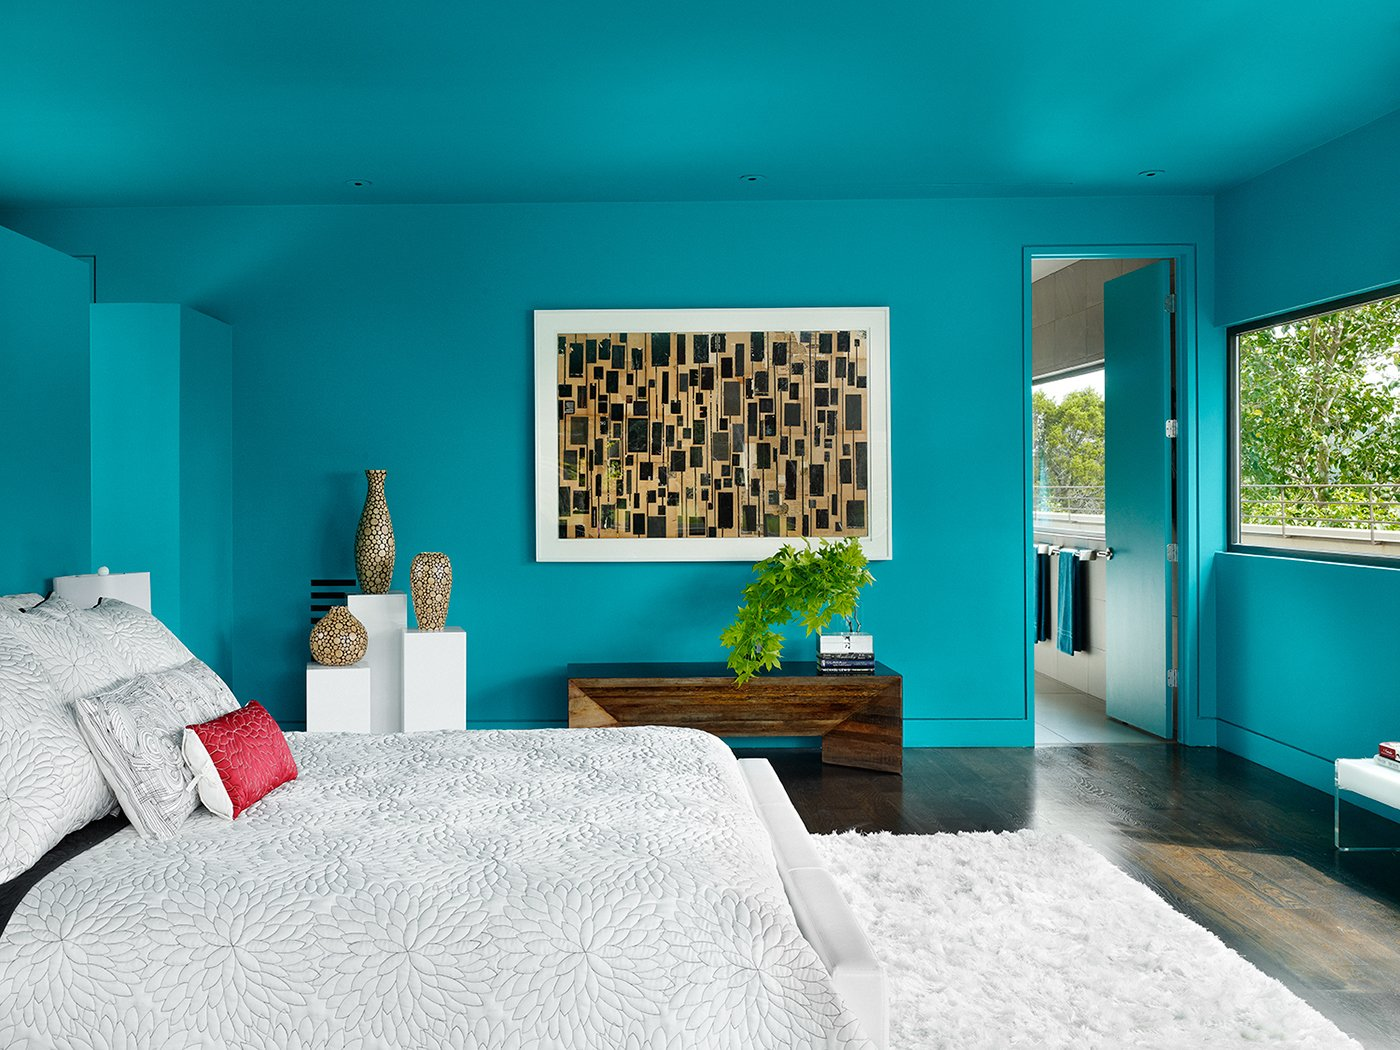 Bedroom and Bed Photographer: Casey Dunn  West Lake Hills Residence by Specht Architects